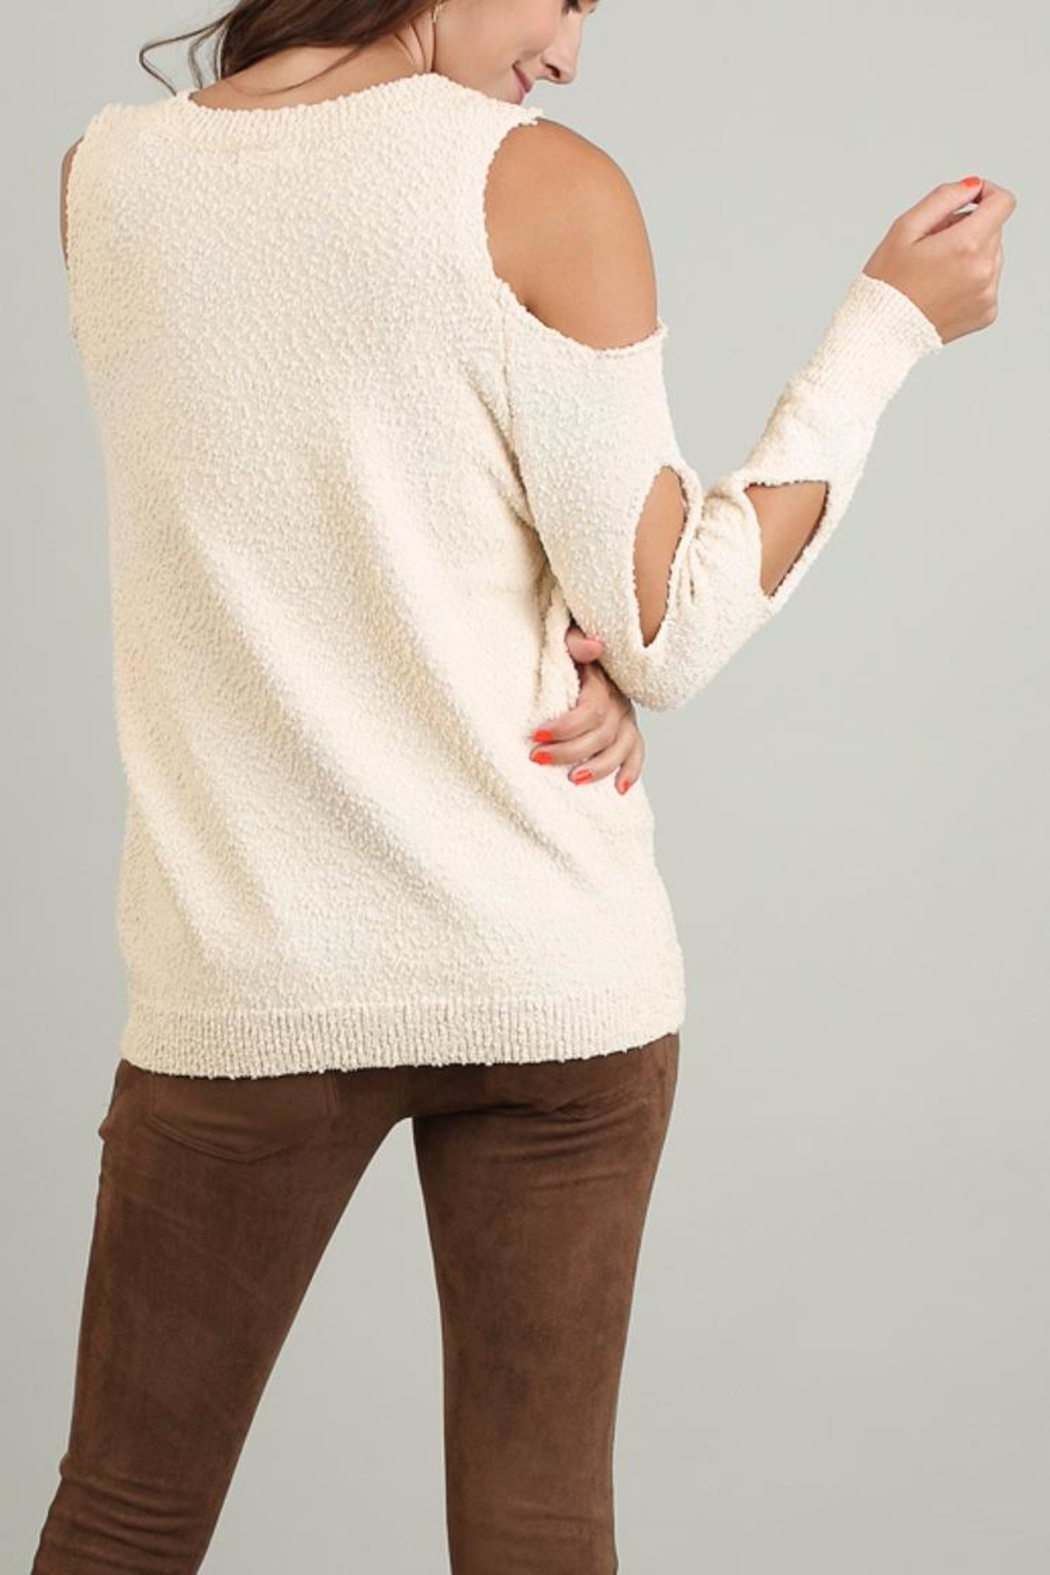 People Outfitter Ines Soft Sweater - Front Full Image